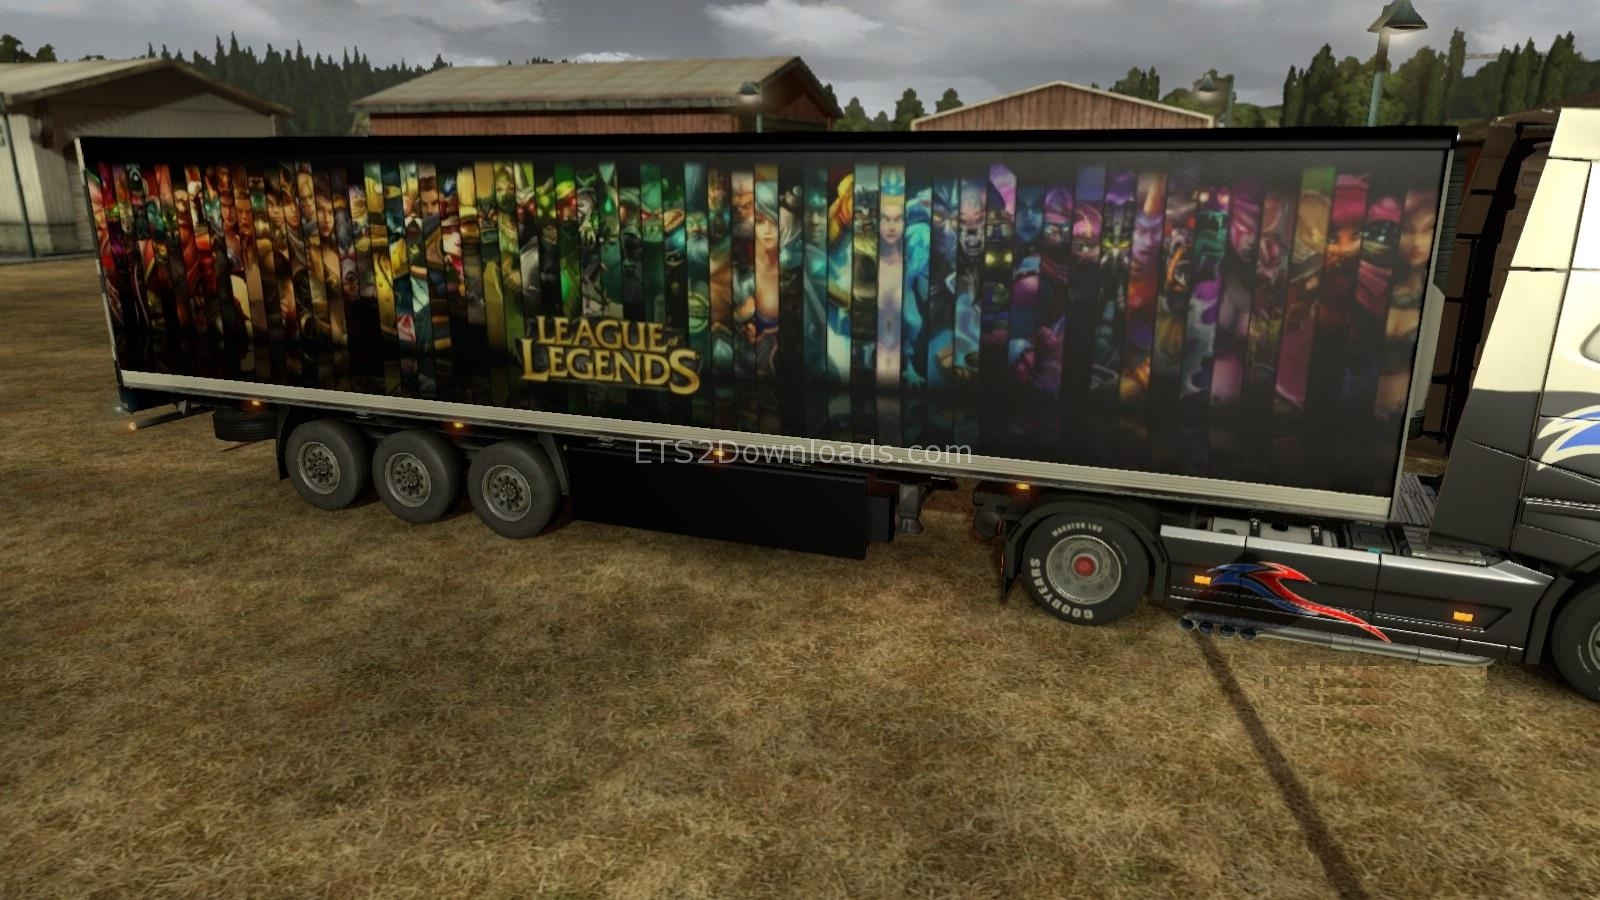 league-of-legends-trailer-ets2